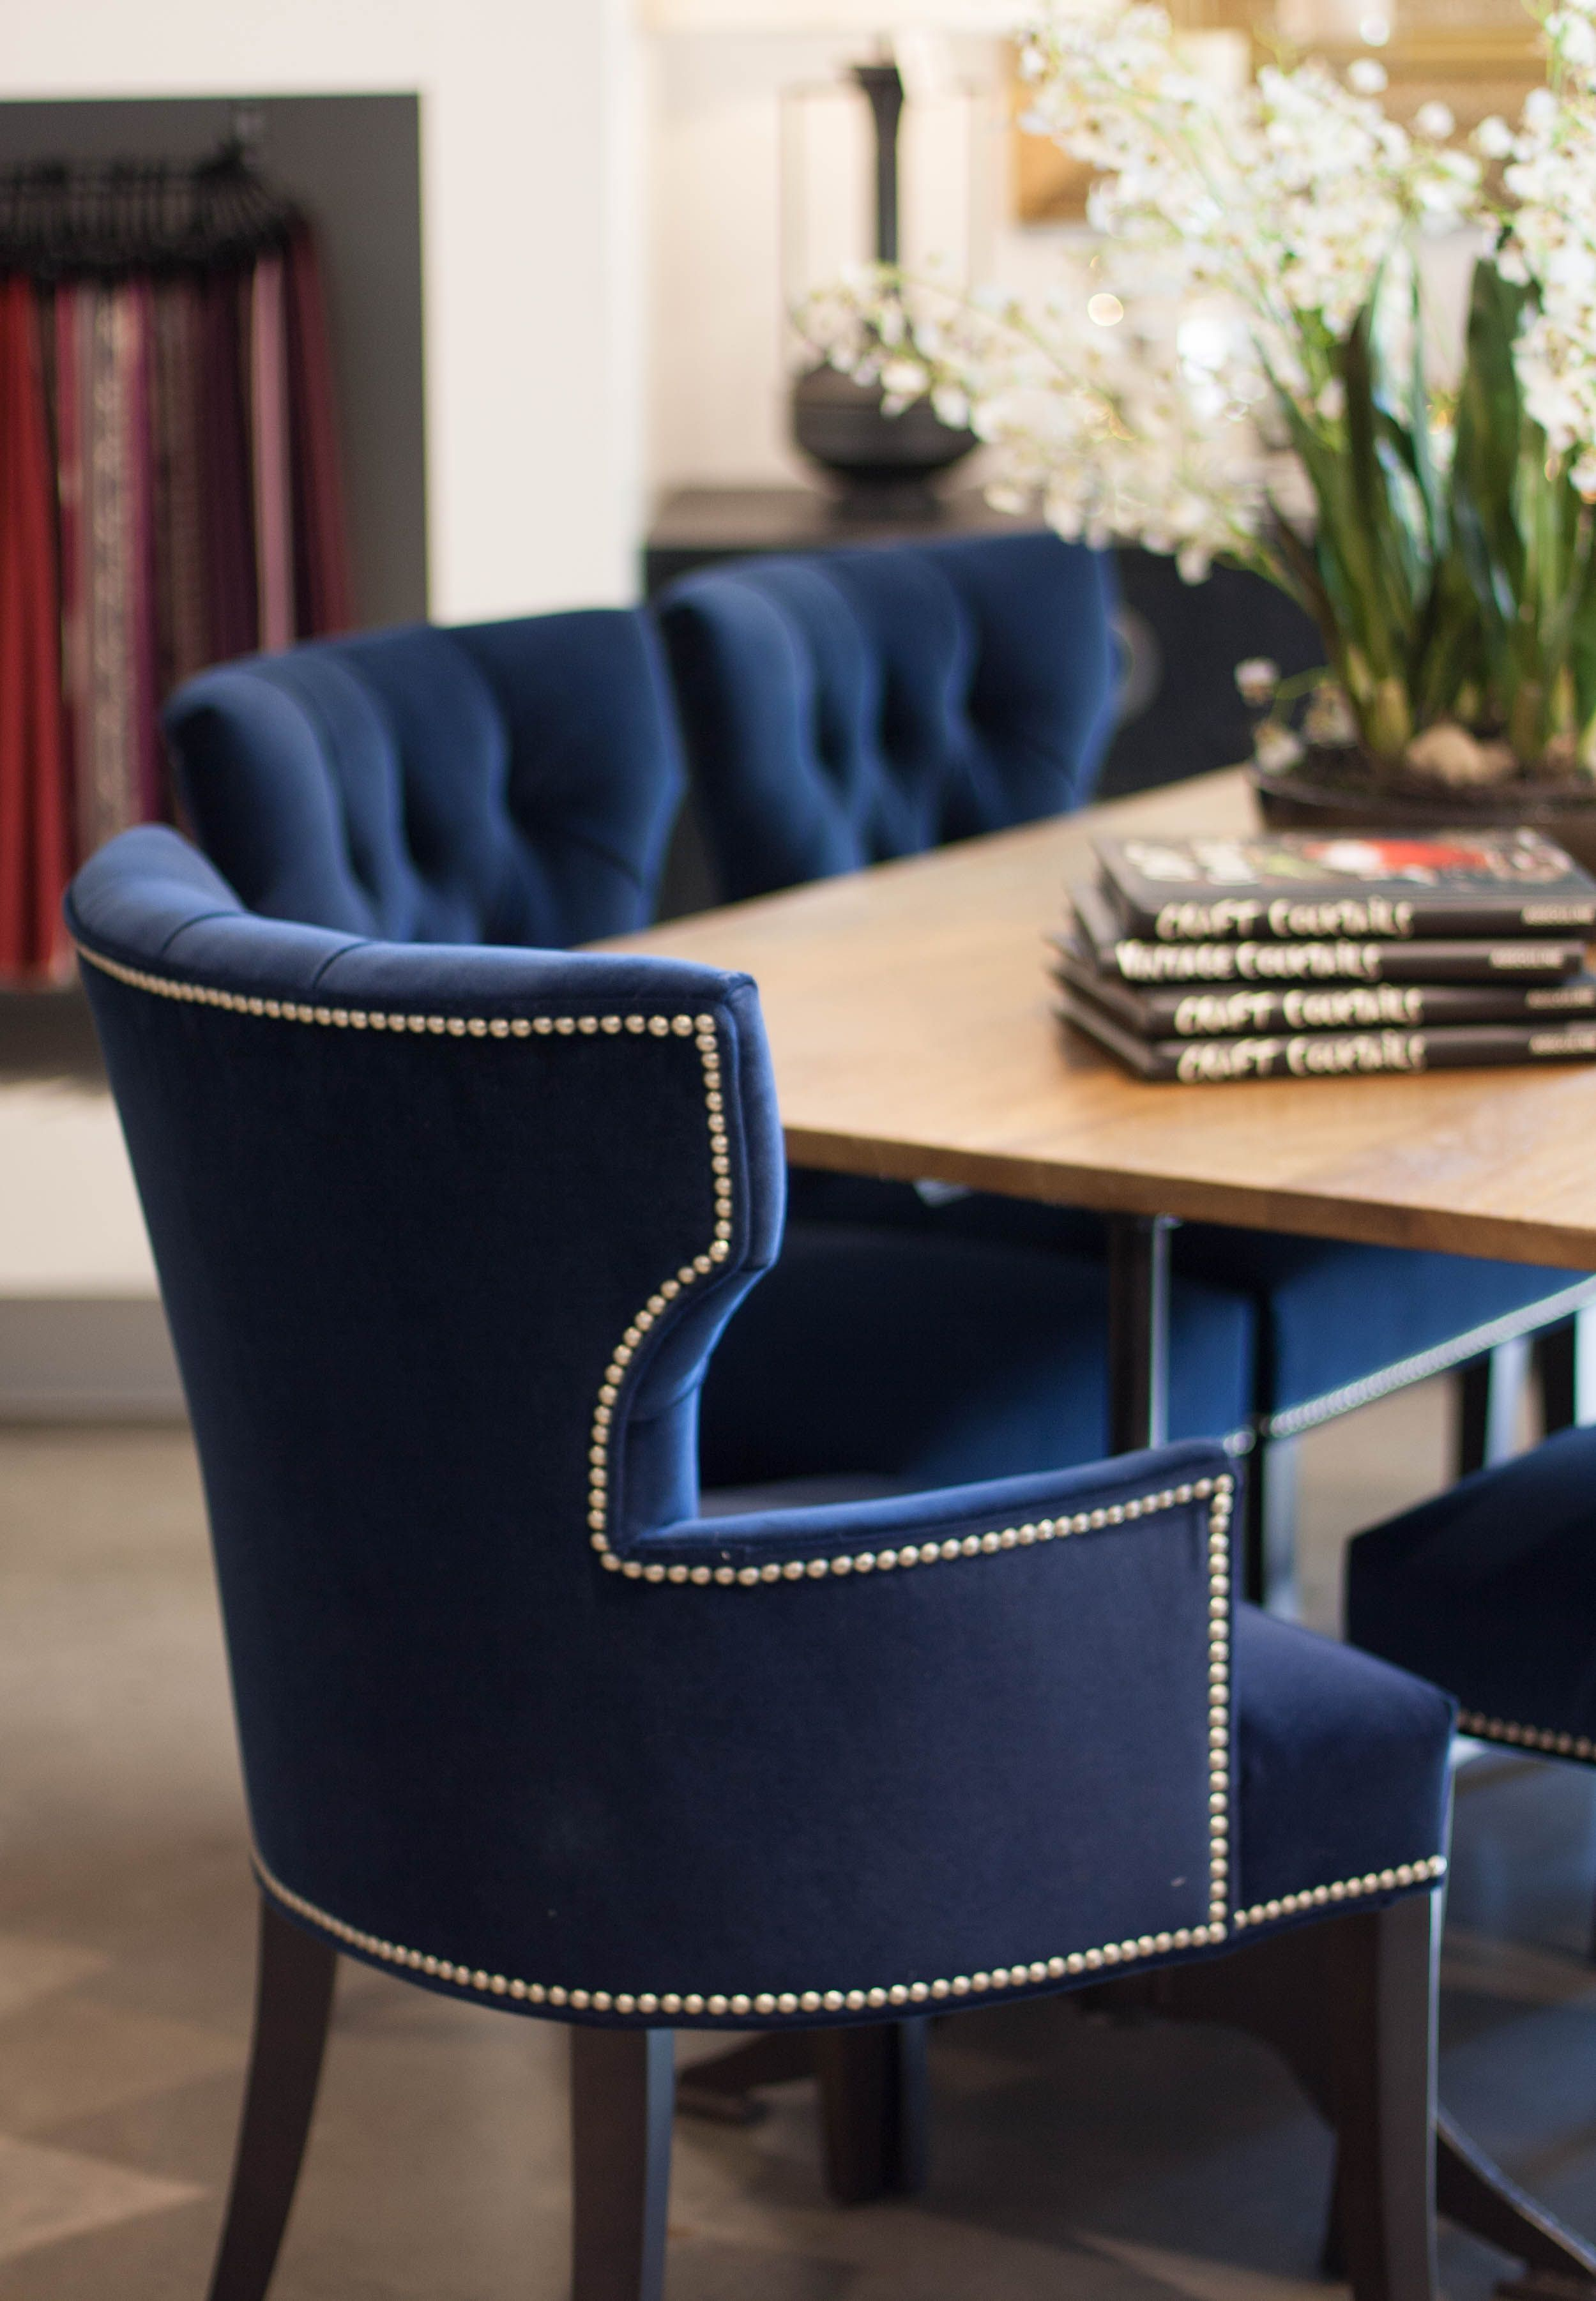 Excellent Dining Chair To Add To Your Design Project Take A Look At The Board And Let You Be Inspir Blue Dining Room Chairs Dining Room Blue Blue Dining Chair